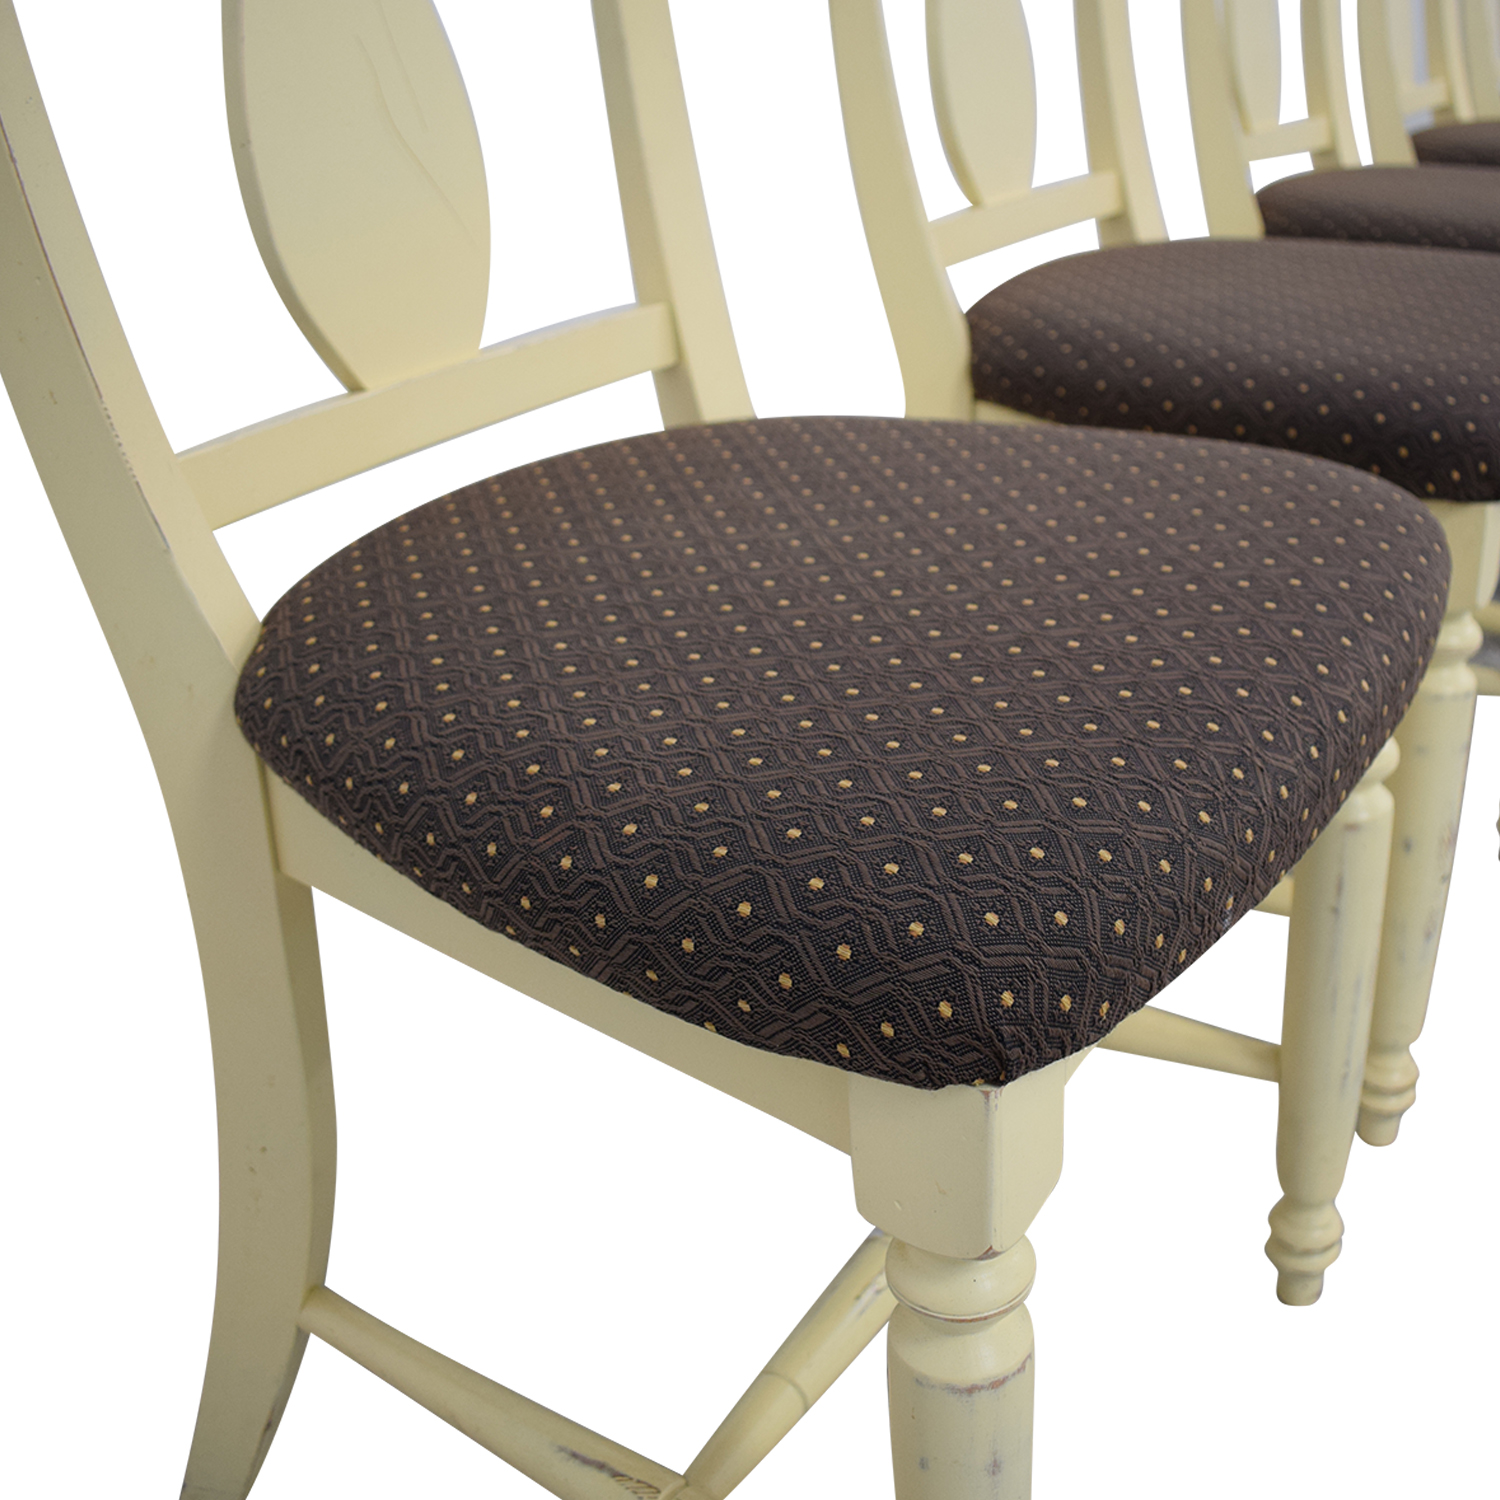 Canadel Furniture Upholstered Dining Chairs off white and dark brown